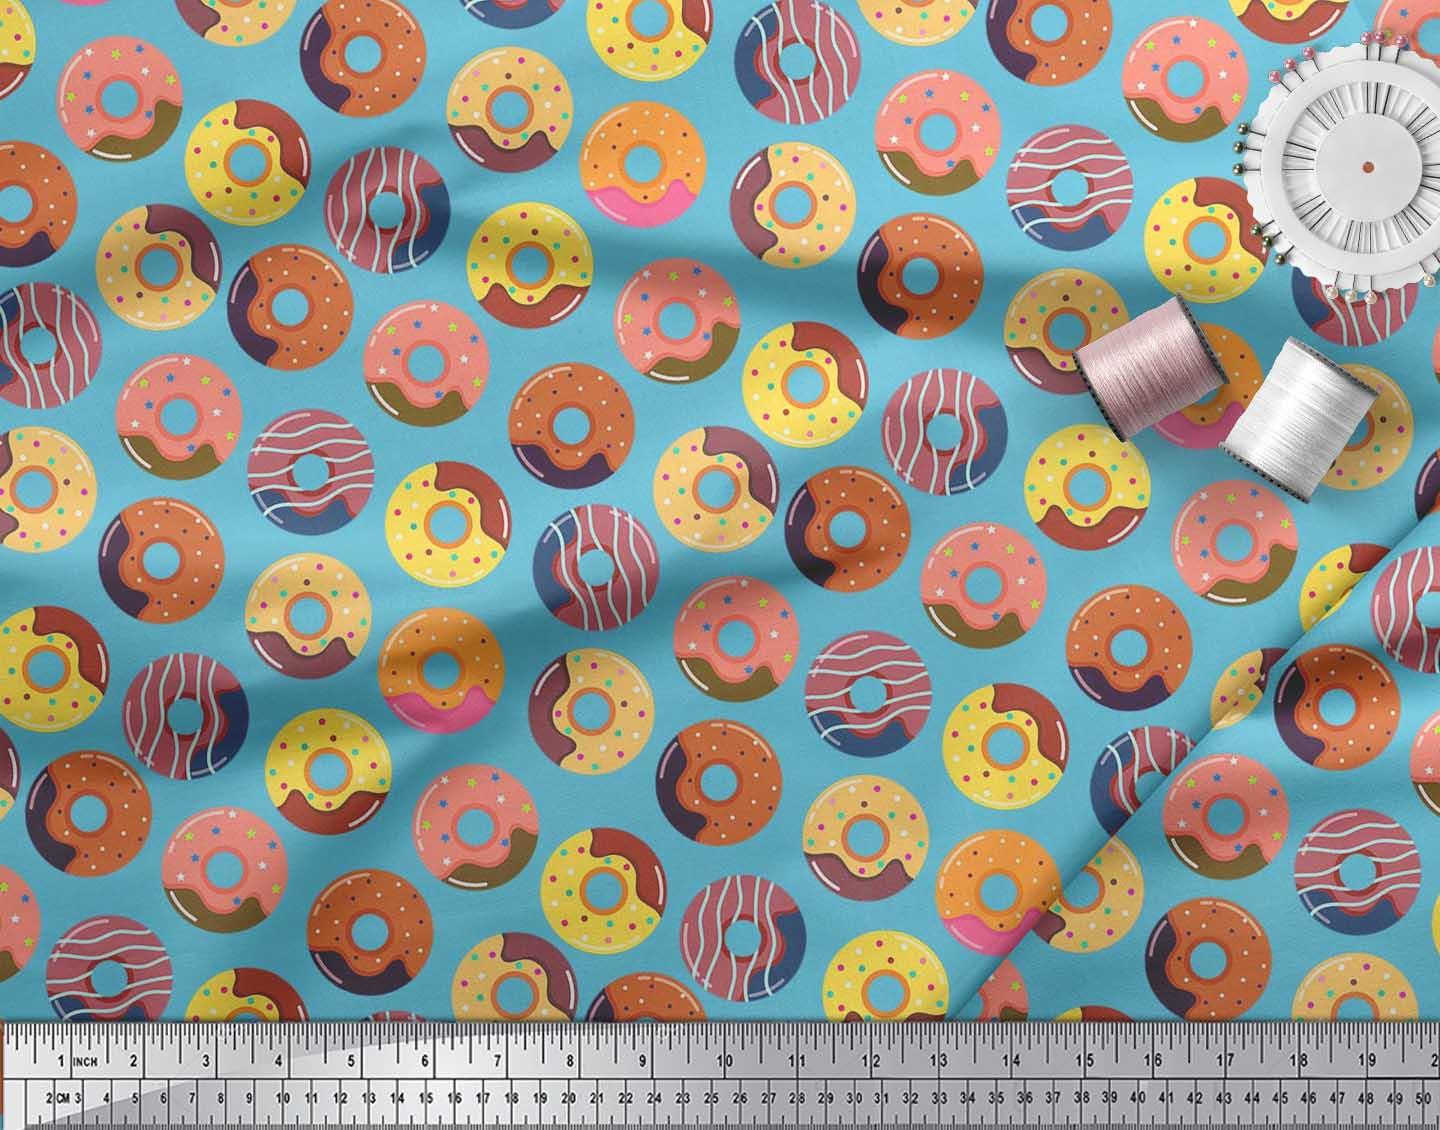 Soimoi-Cotton-Poplin-Fabric-Donuts-Food-Print-Fabric-by-metre-42-ZgL thumbnail 3